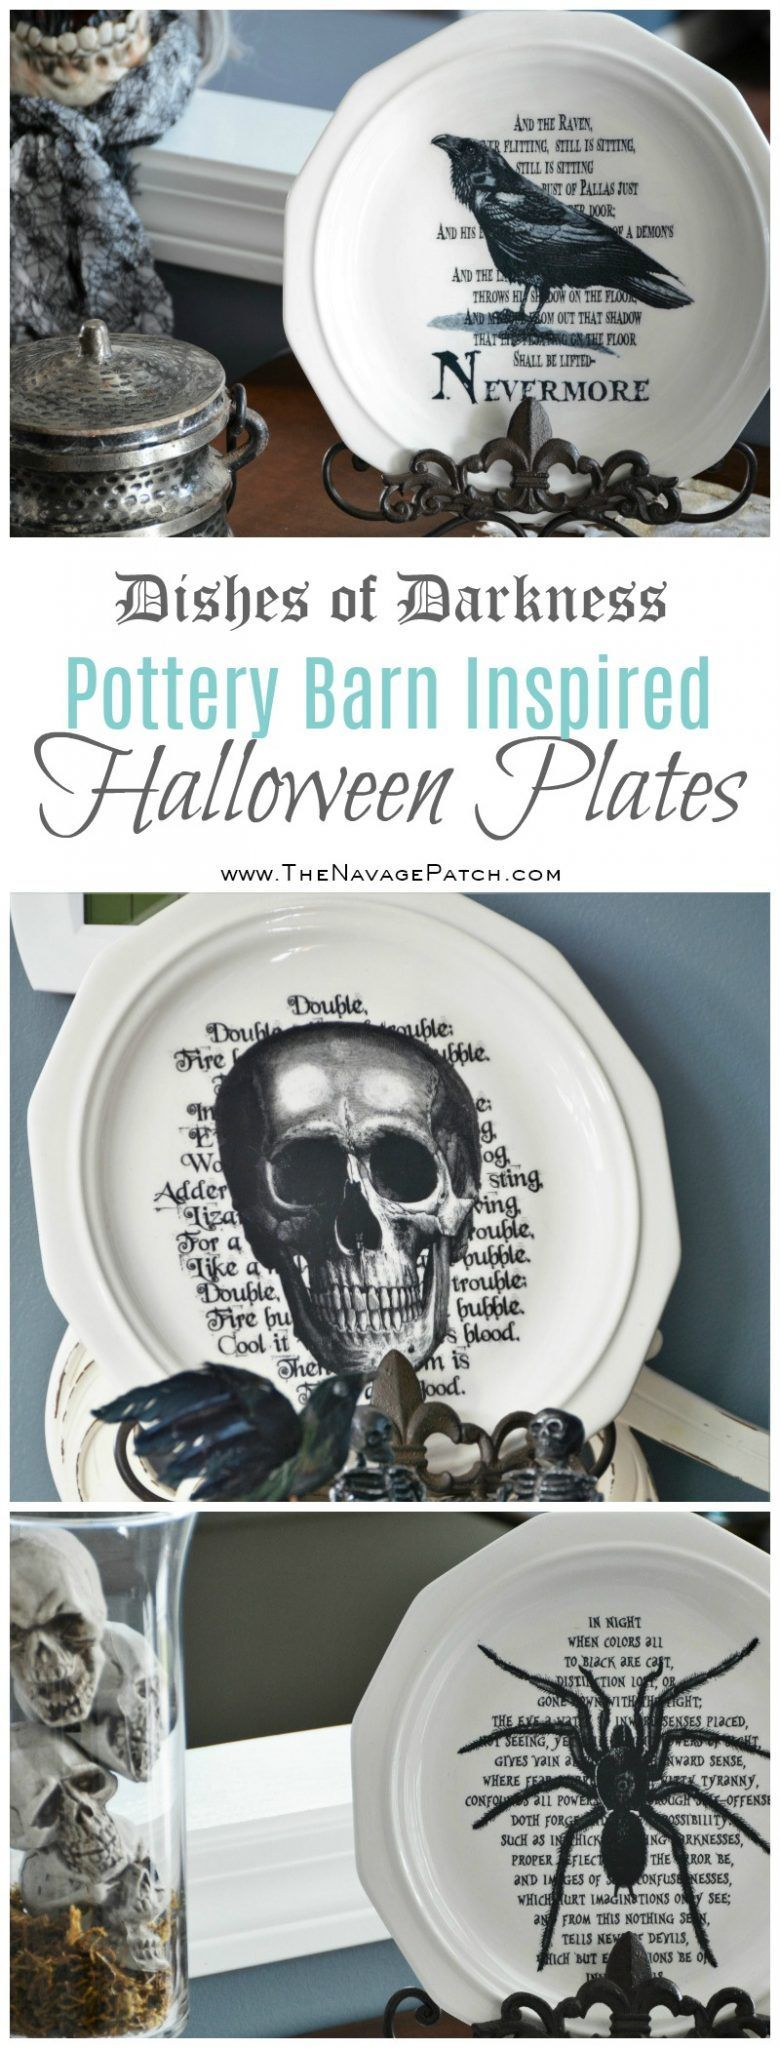 Dishes Of Darkness Pottery Barn Inspired Halloween Plates Diy Halloween Decoration How To Im Halloween Plates Halloween Plates Diy Pottery Barn Halloween